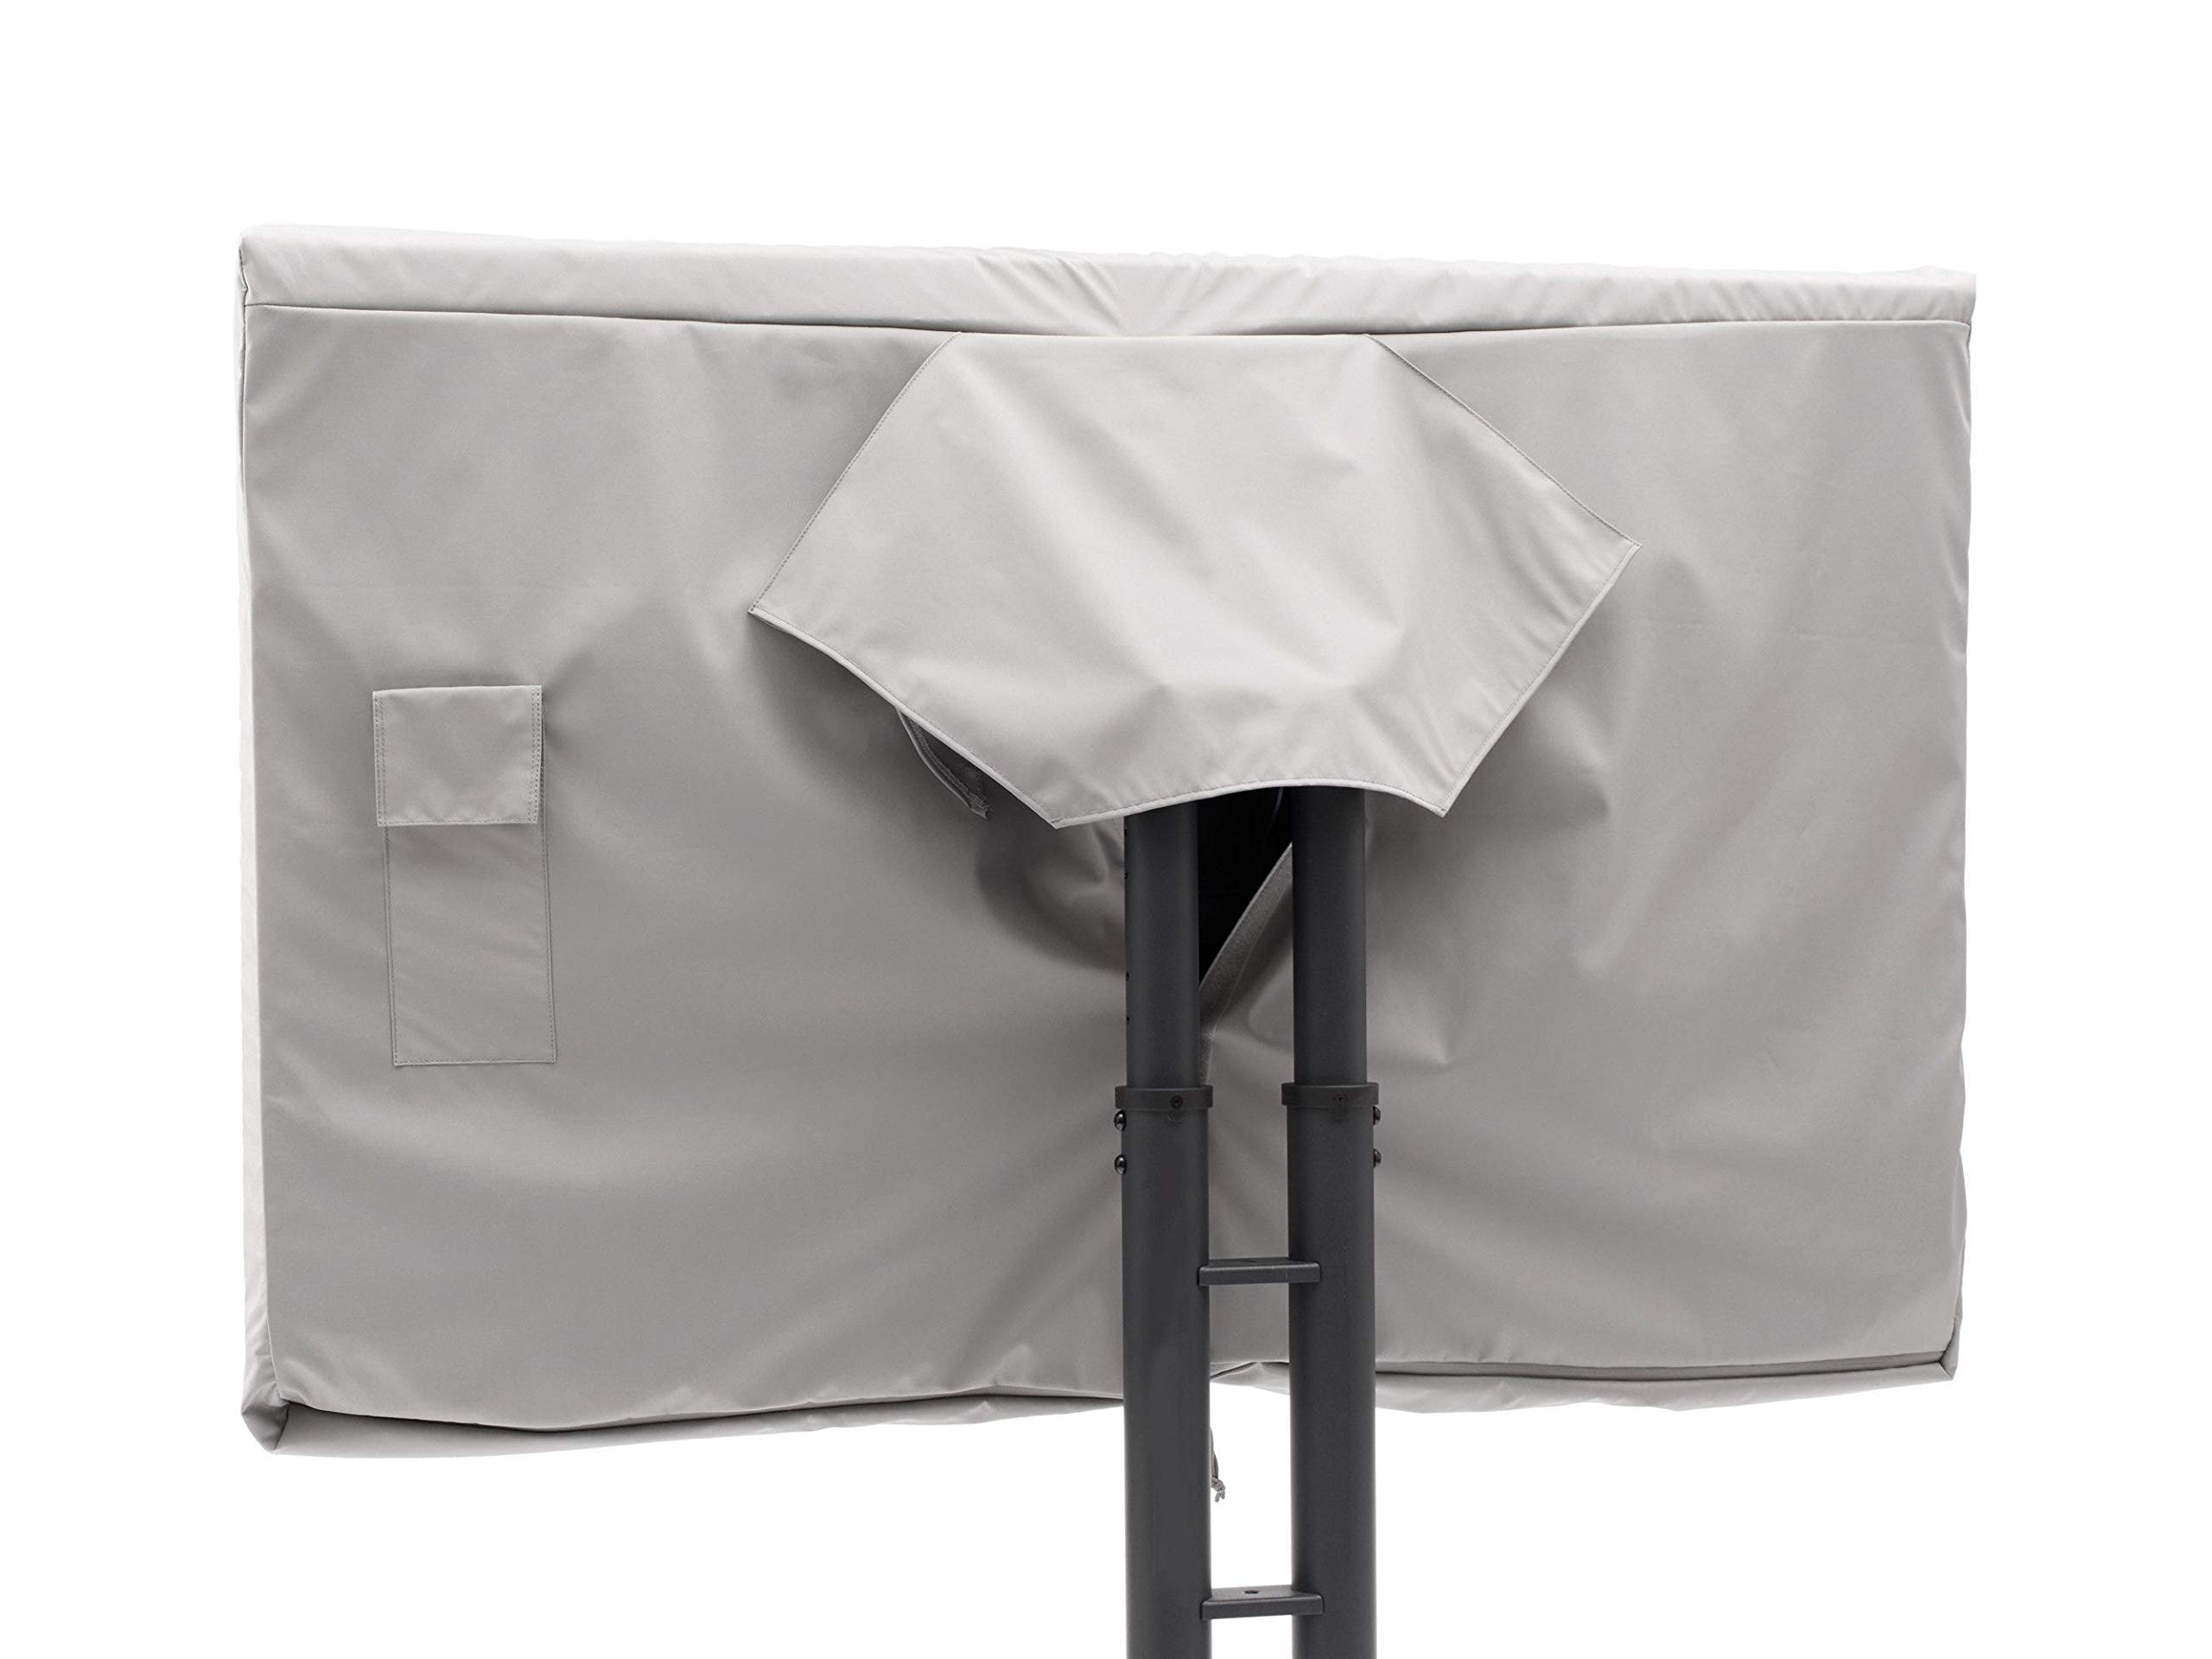 Covermates - Outdoor TV Cover - Fits 18 to 21 Inch TV's - Ultima - 300 Denier Fade Resistant Polyester - Full Coverage - Interior Fleece Lining - 7 Year Warranty - Water Resistant - Grey